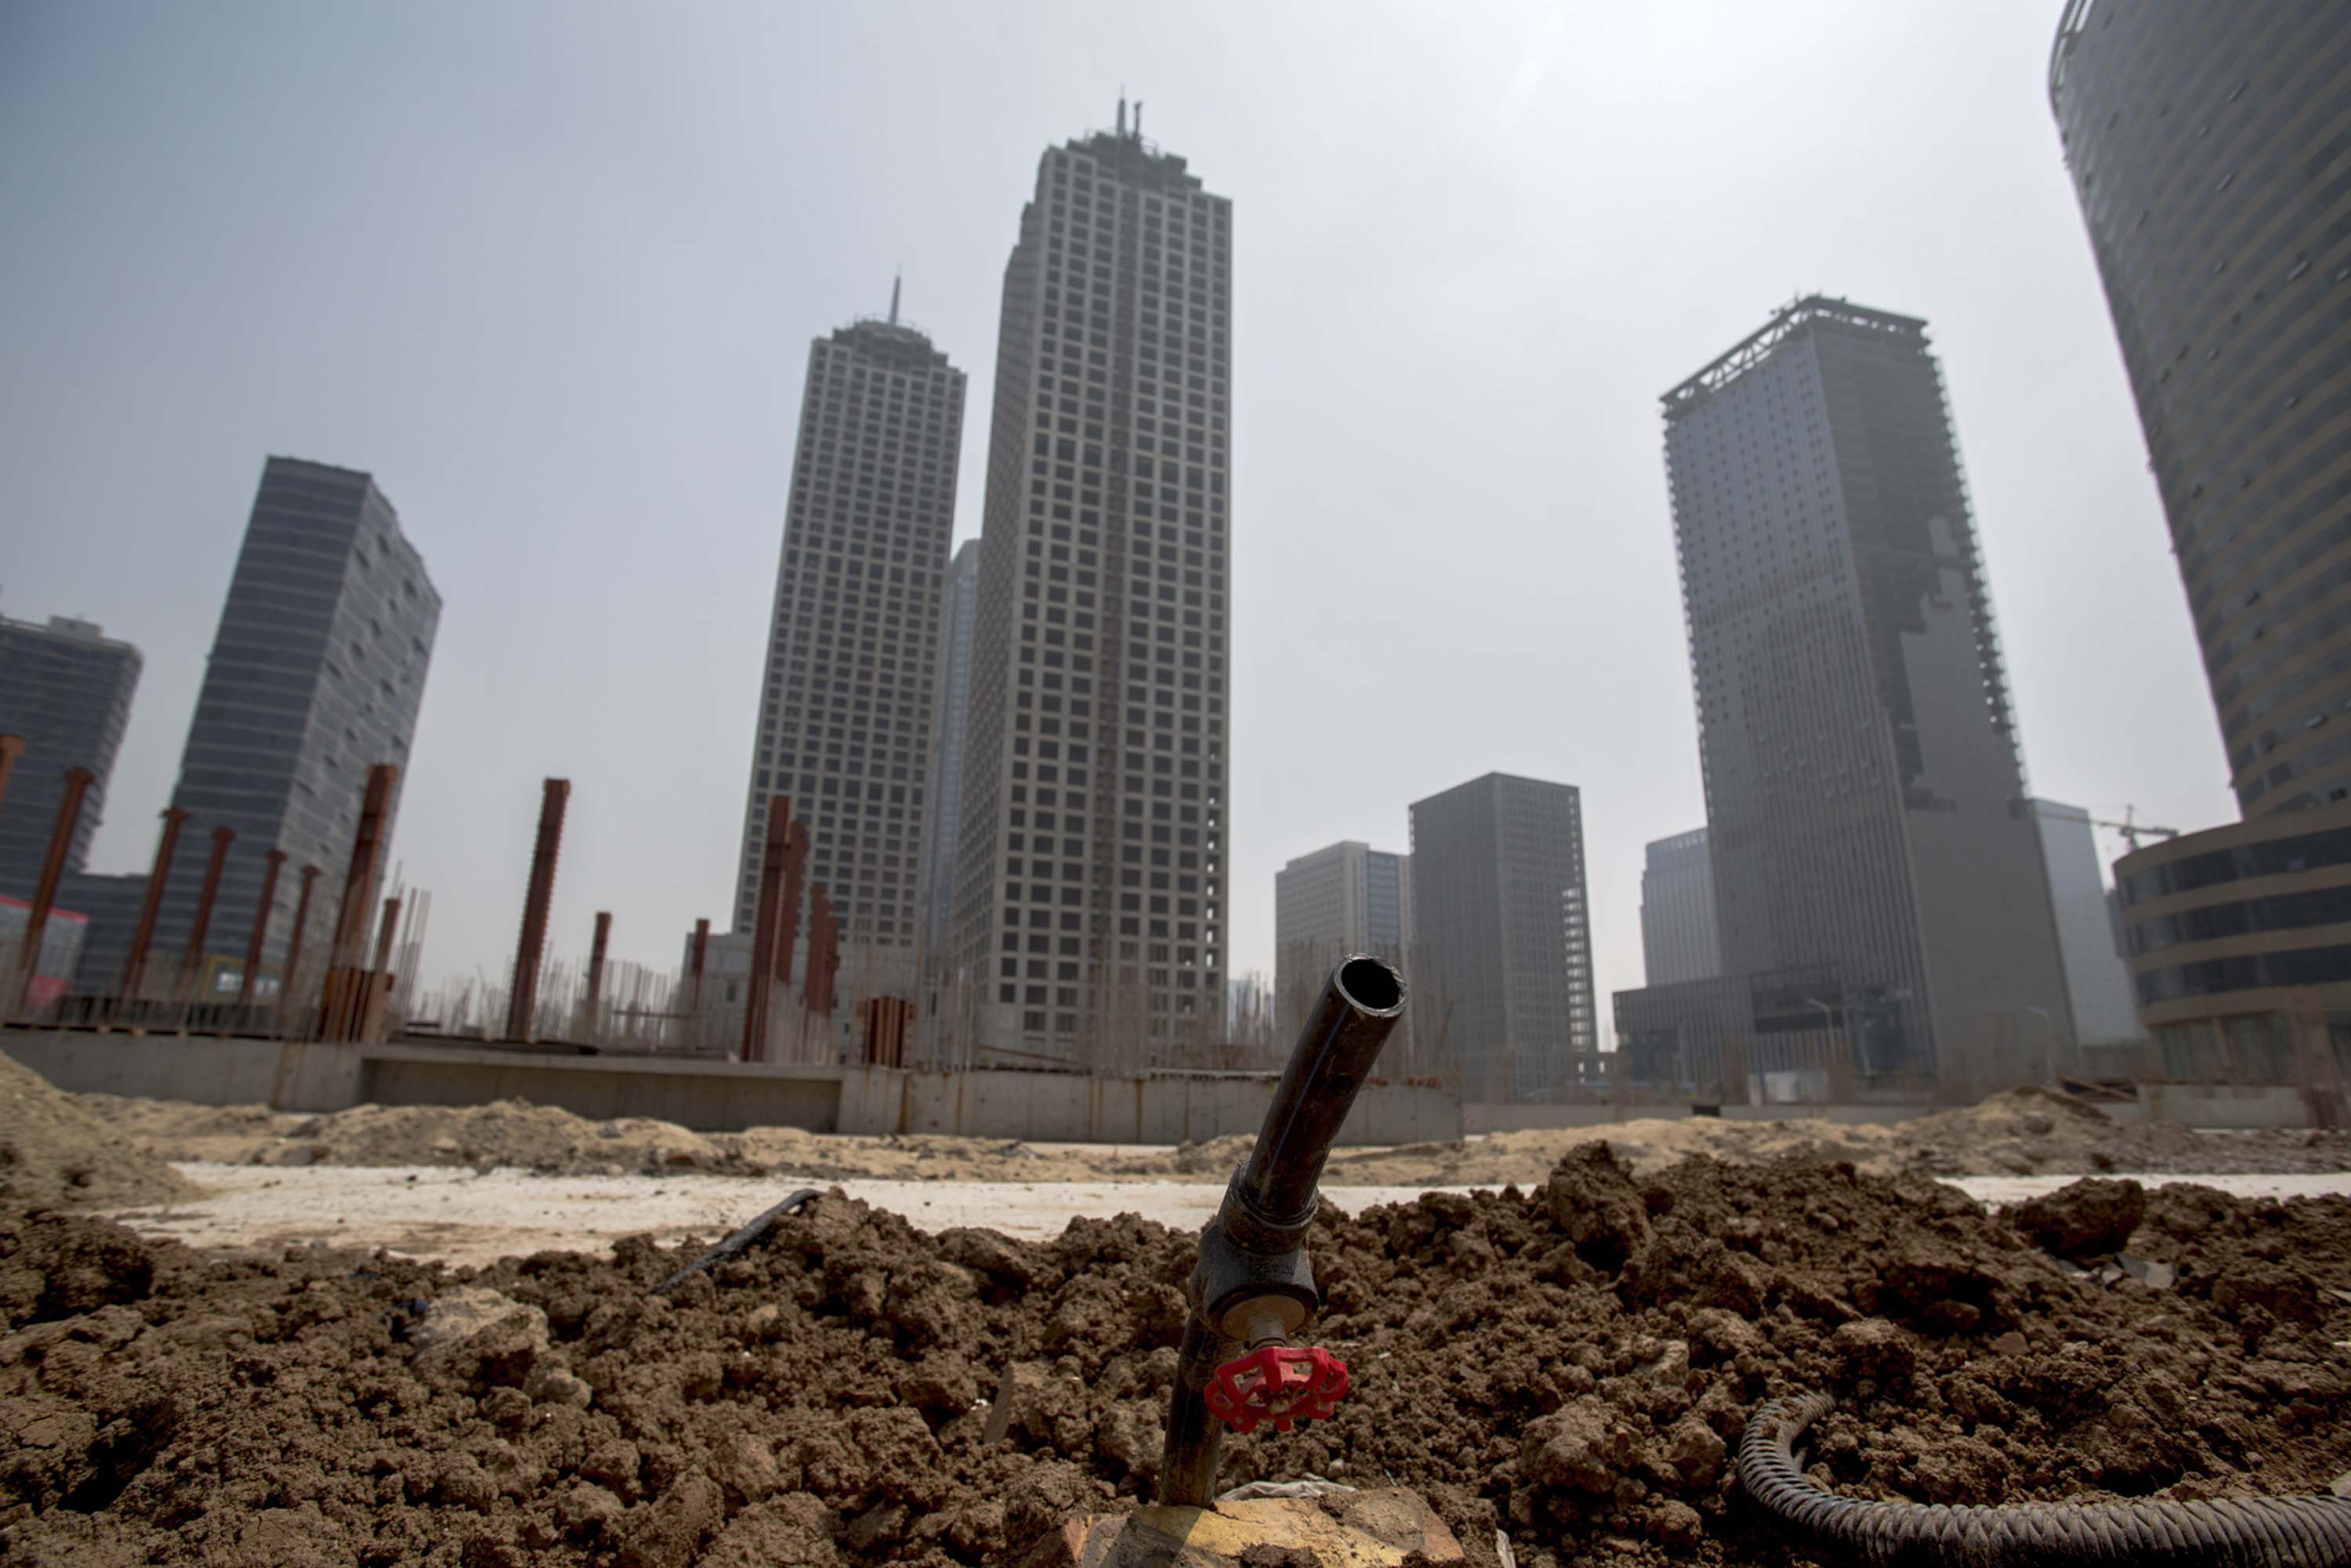 Unfinished buildings are left in the Chinese city of Tianjin, as the slowing property sector takes a toll on the economy